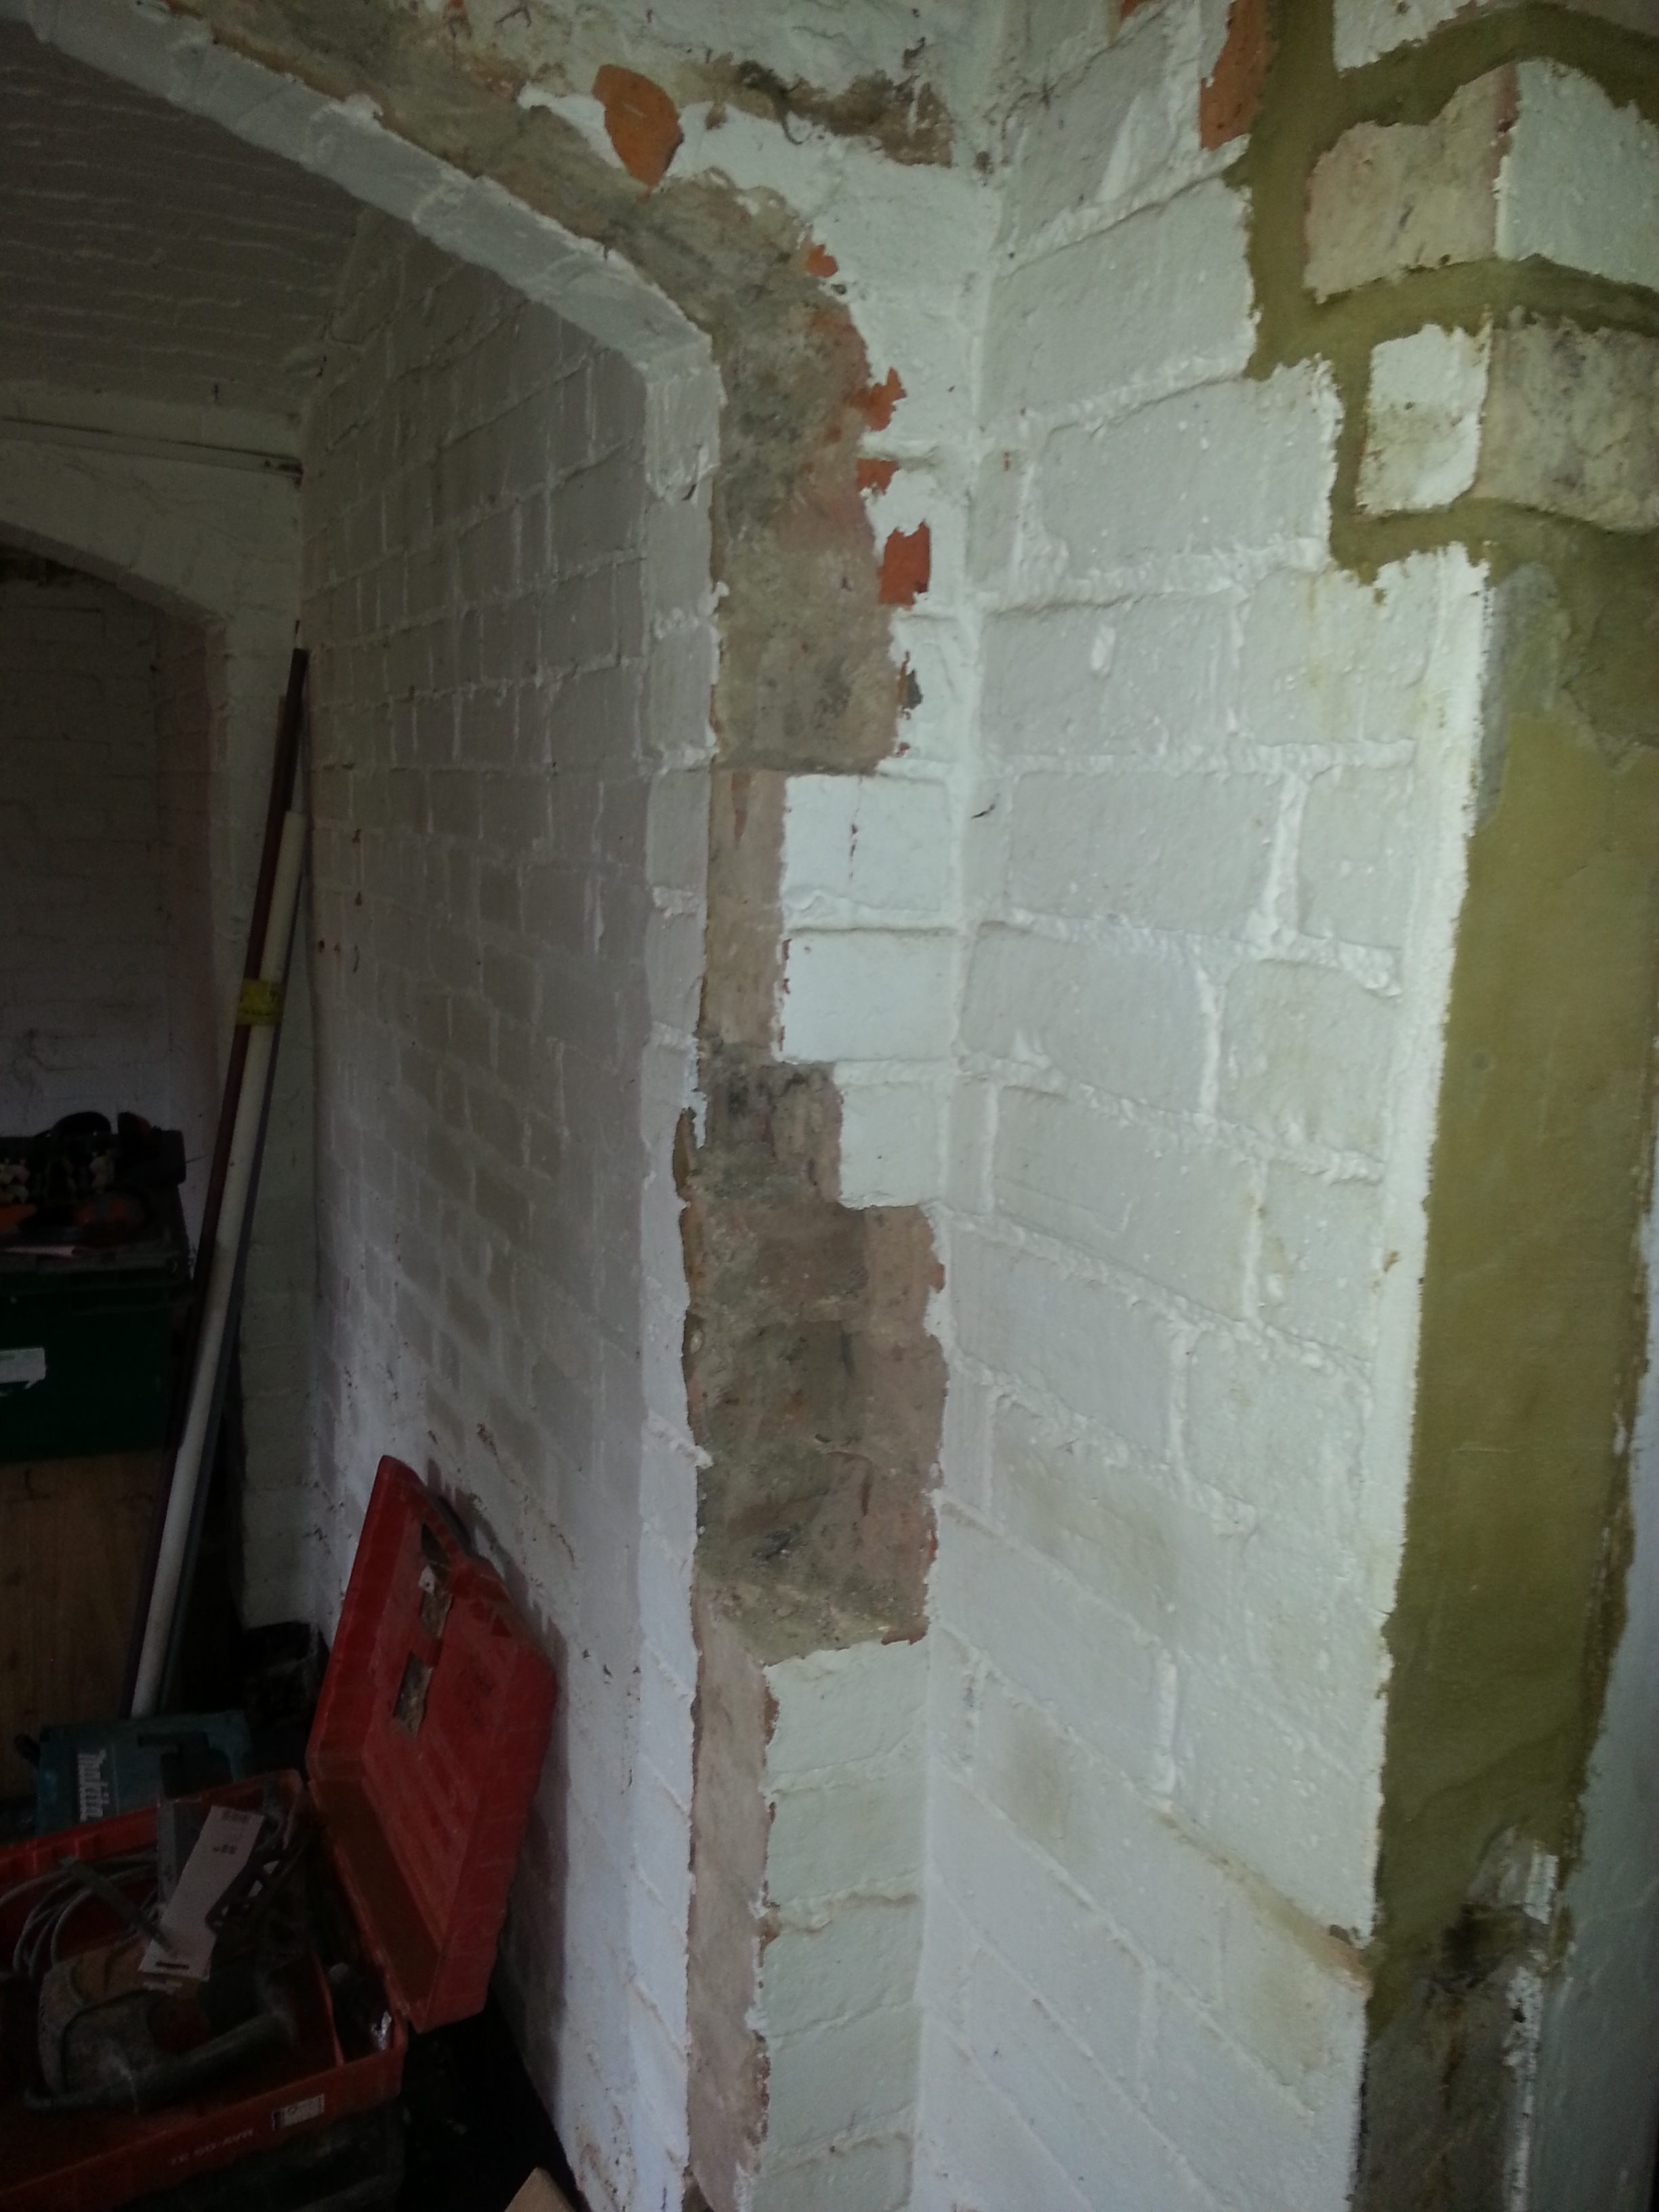 All brickwork painted white and some in need of repairs